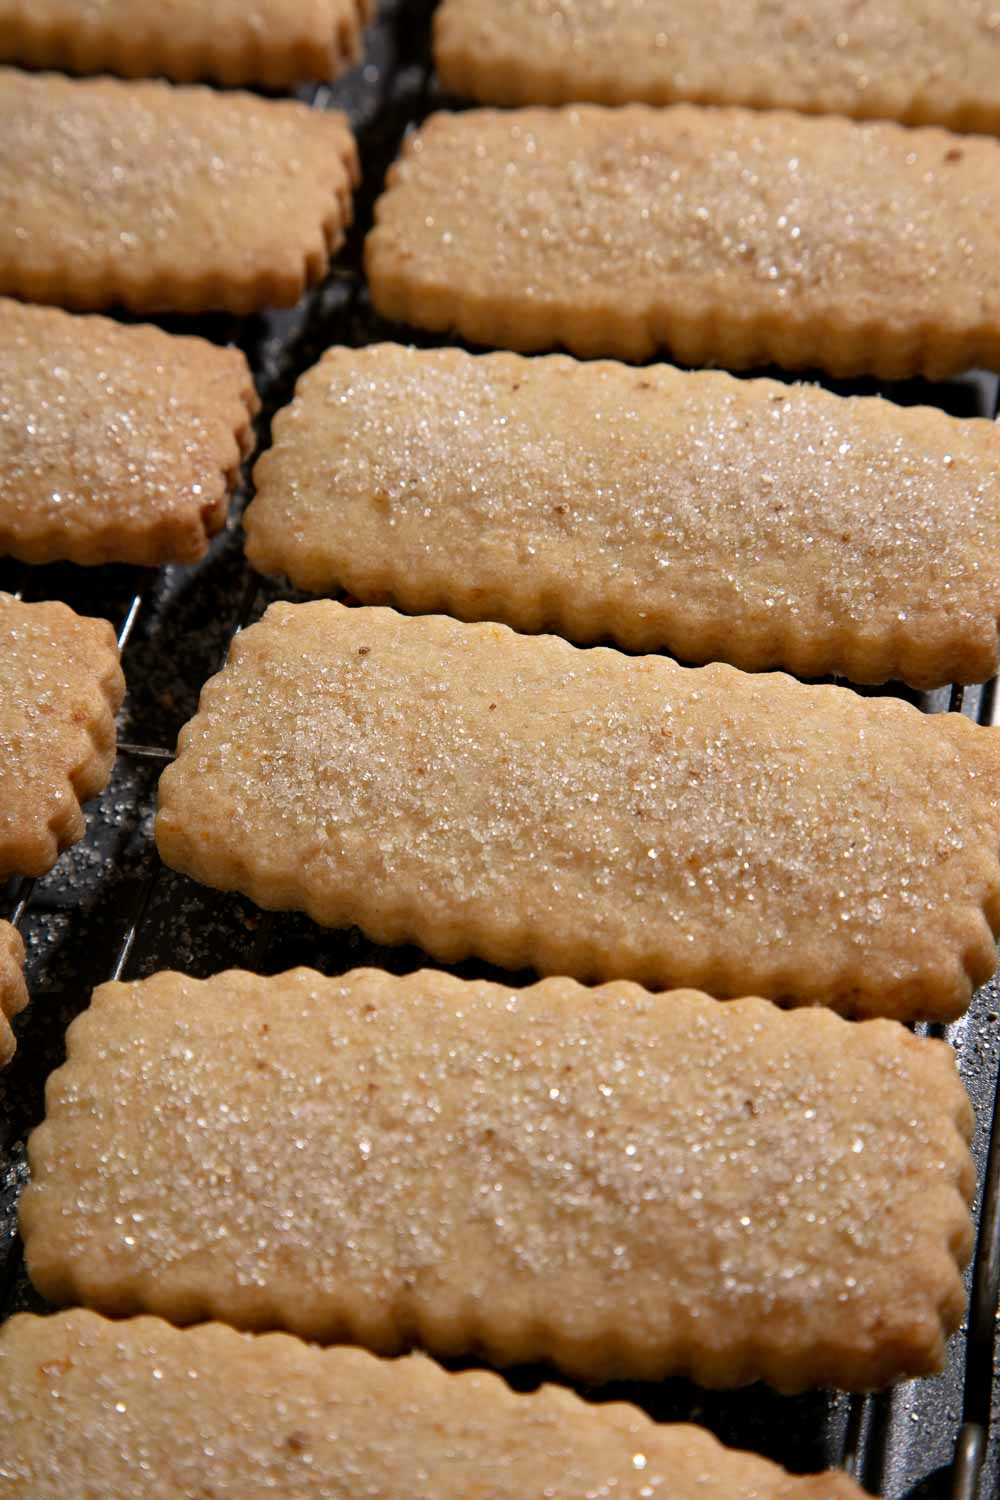 Shortbread fingers cooling on a wire rack.